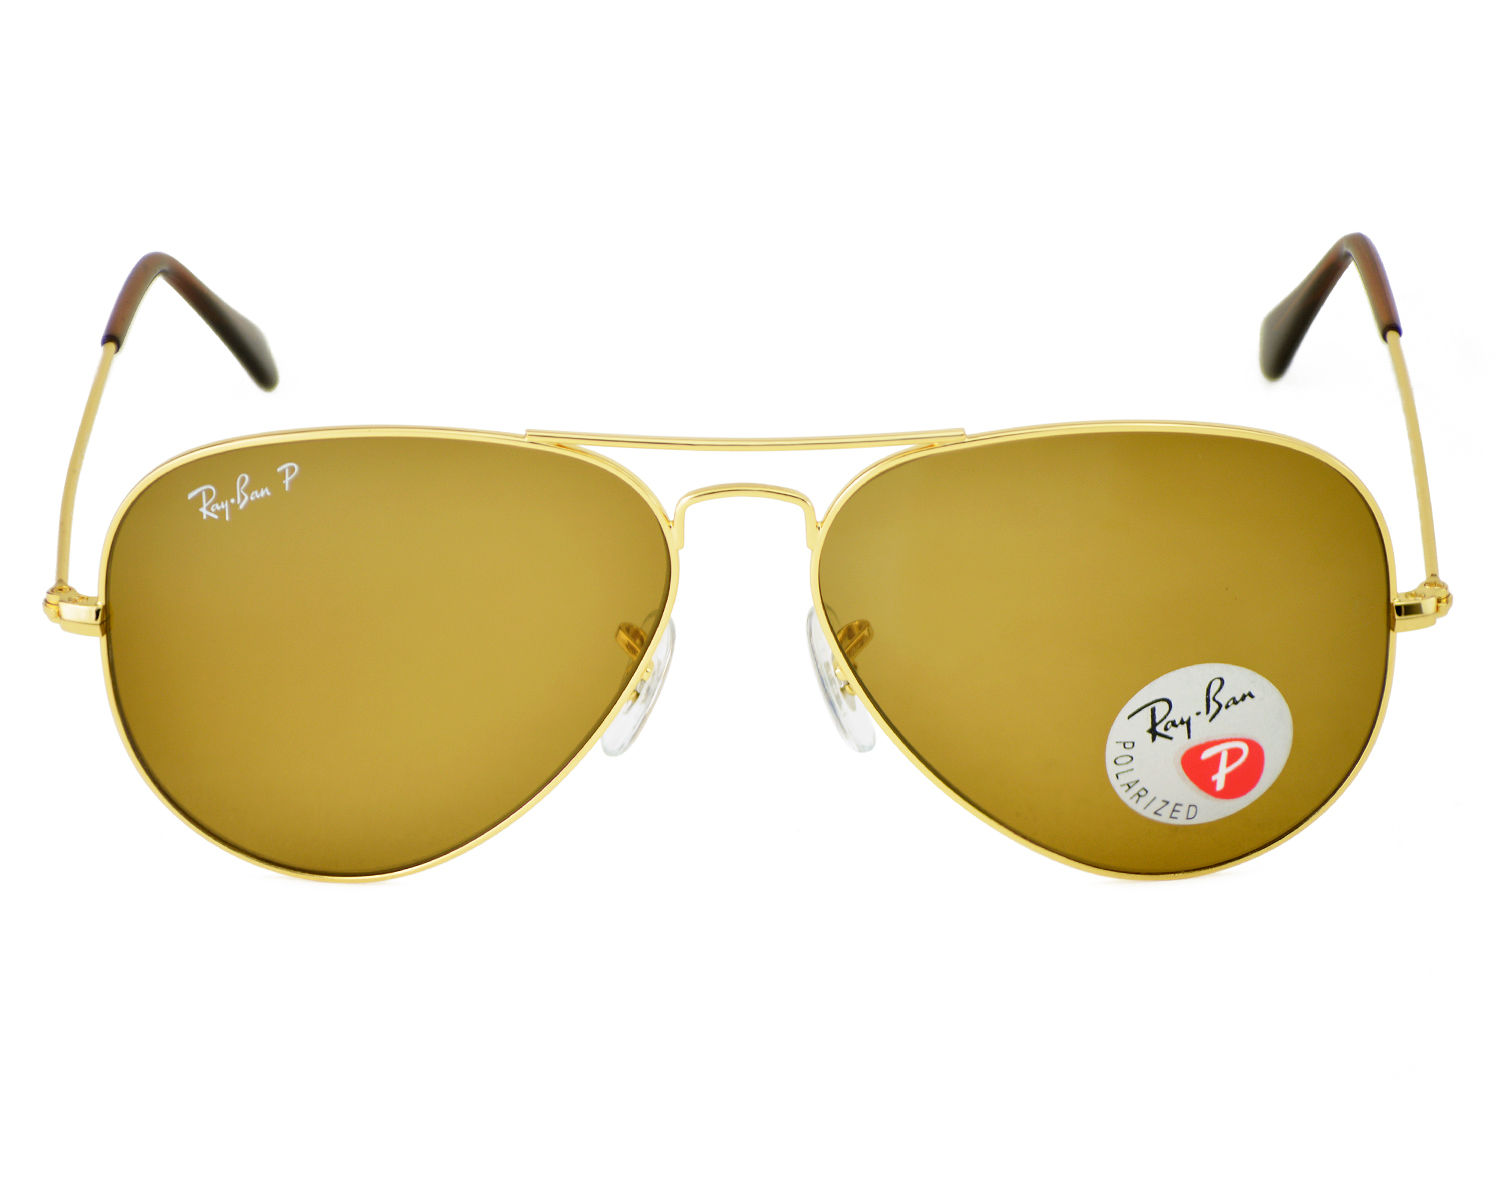 ray ban rb3025 aviator sunglasses gold brown polarized